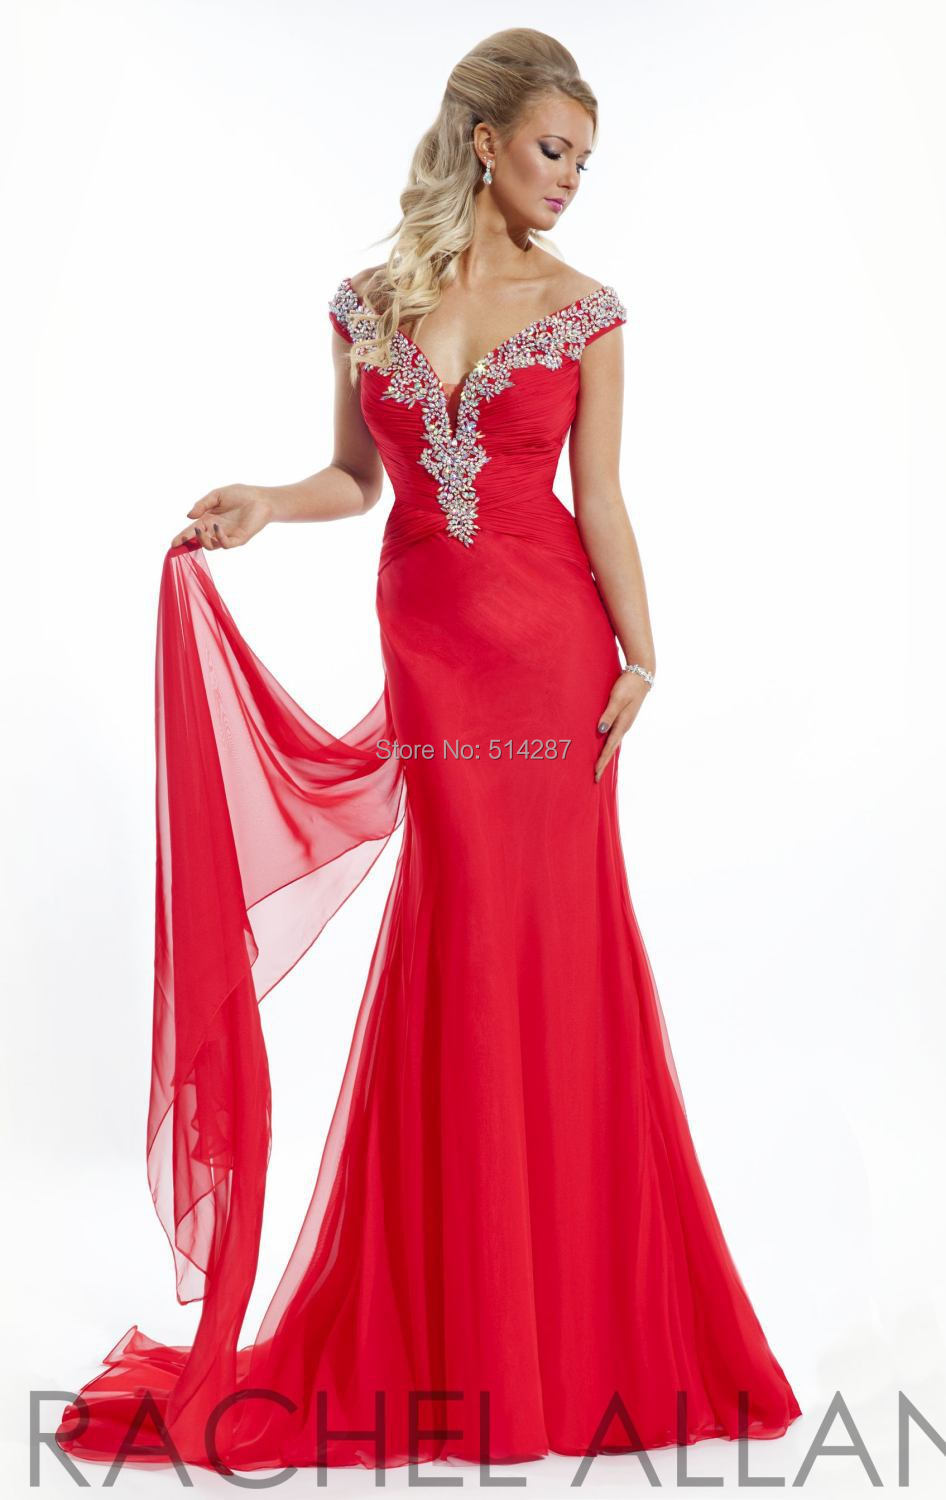 Buy 2016 new fashion vestido de festa off for Costume jewelry for evening gowns